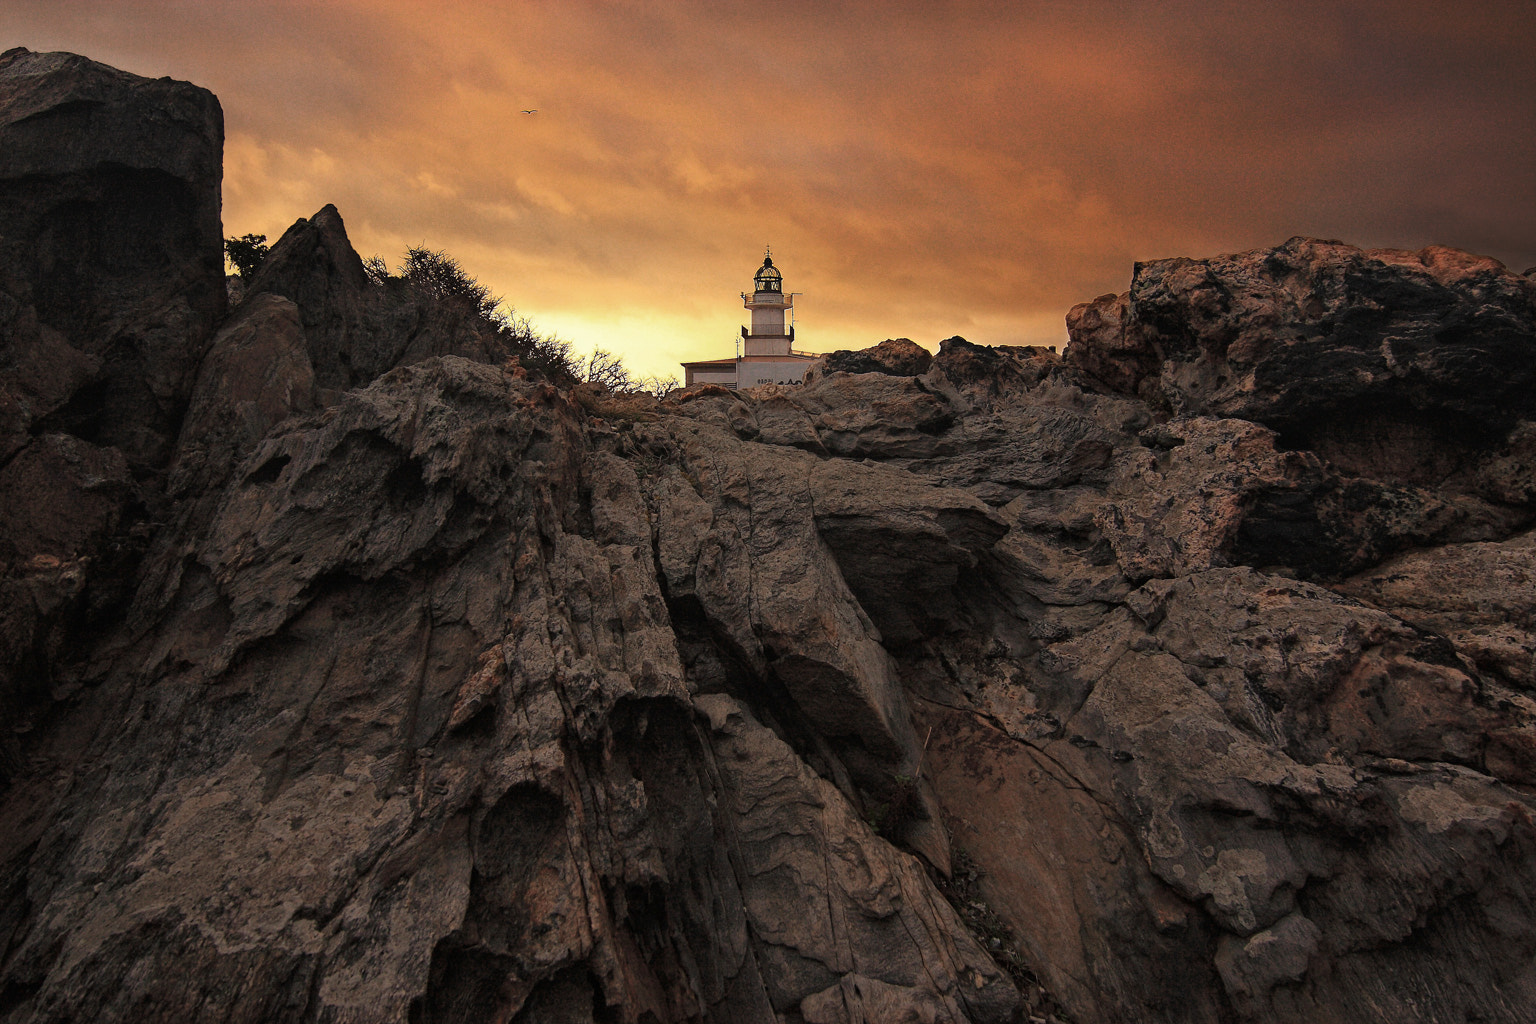 Photograph cap de creus by toni fernandez on 500px